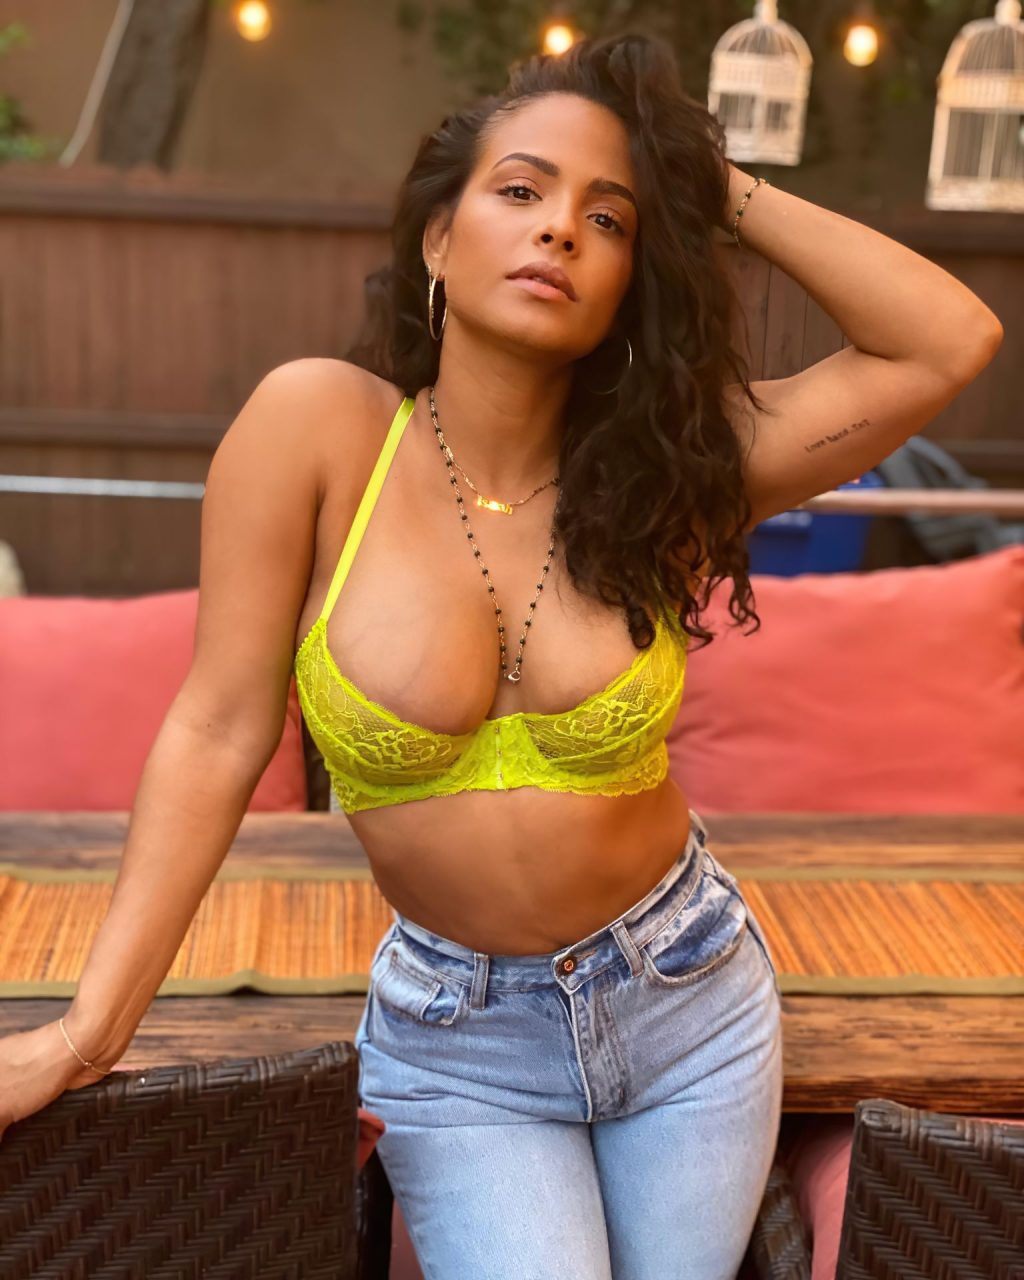 Christina Milian Shows Her Great Cleavage (3 Photos)